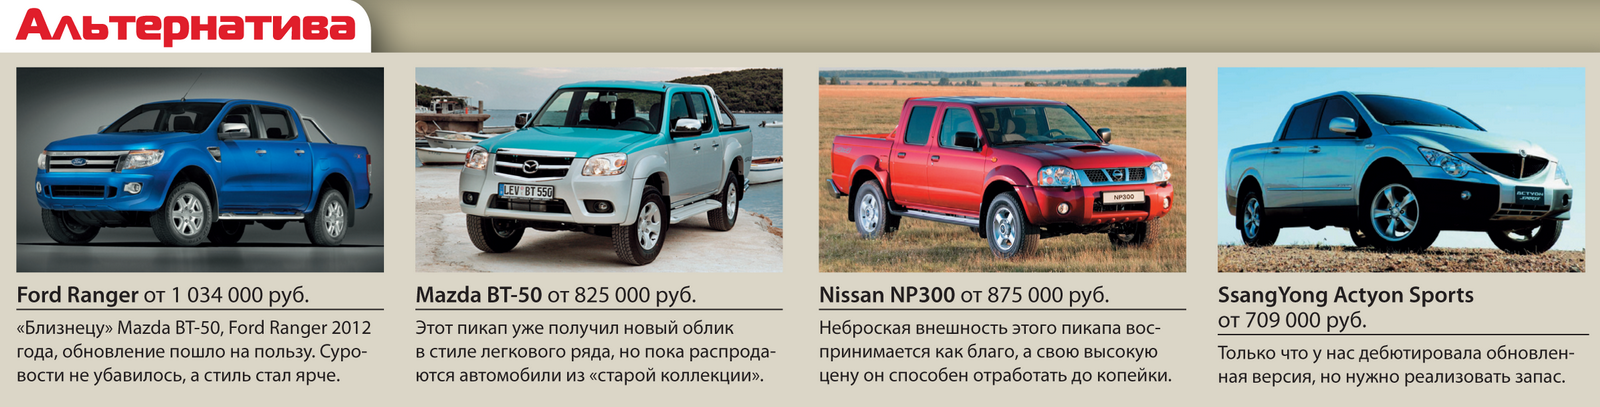 Great Wall Wingle 5 и UAZ Pickup